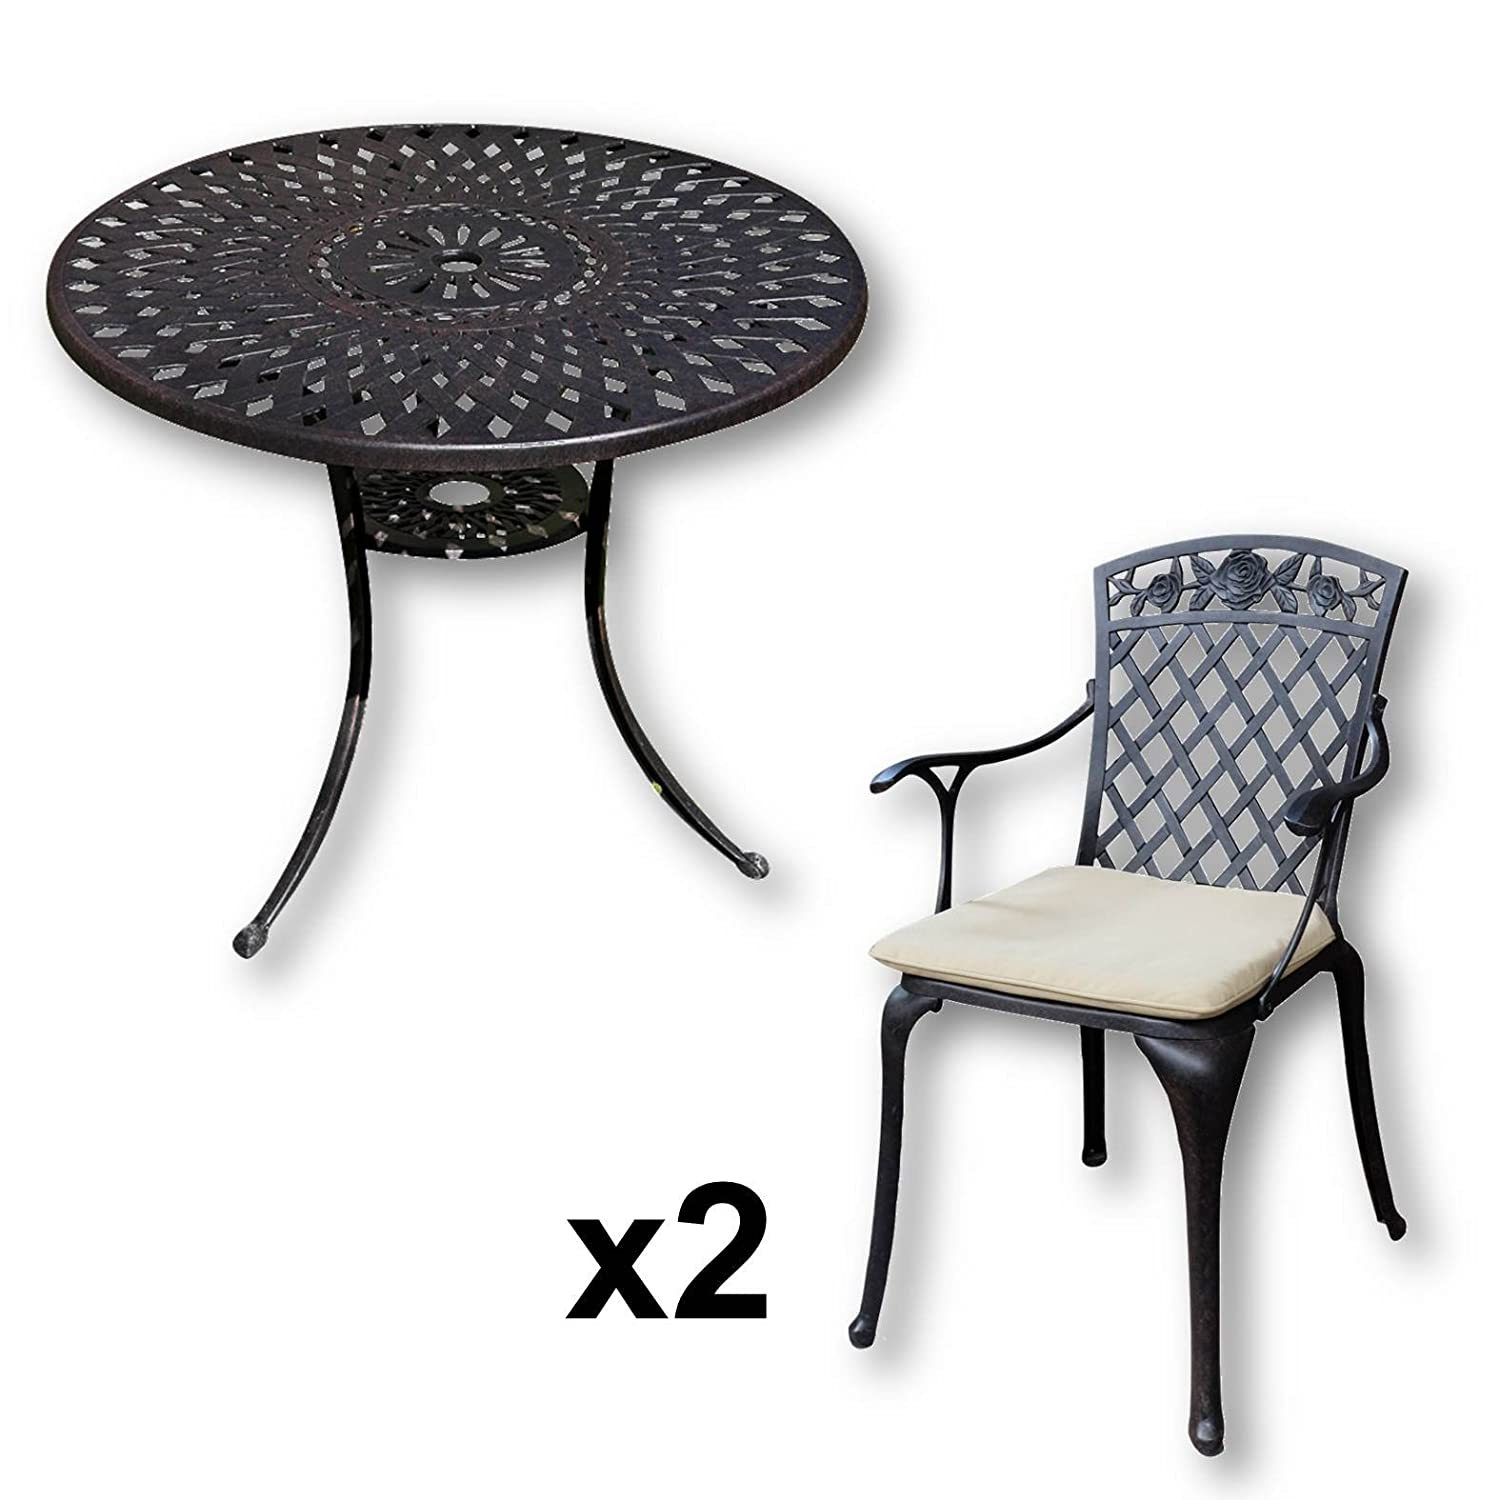 lazy susan mia 90 cm runder gartentisch mit 2 st hlen gartenm bel set aus metall antik. Black Bedroom Furniture Sets. Home Design Ideas